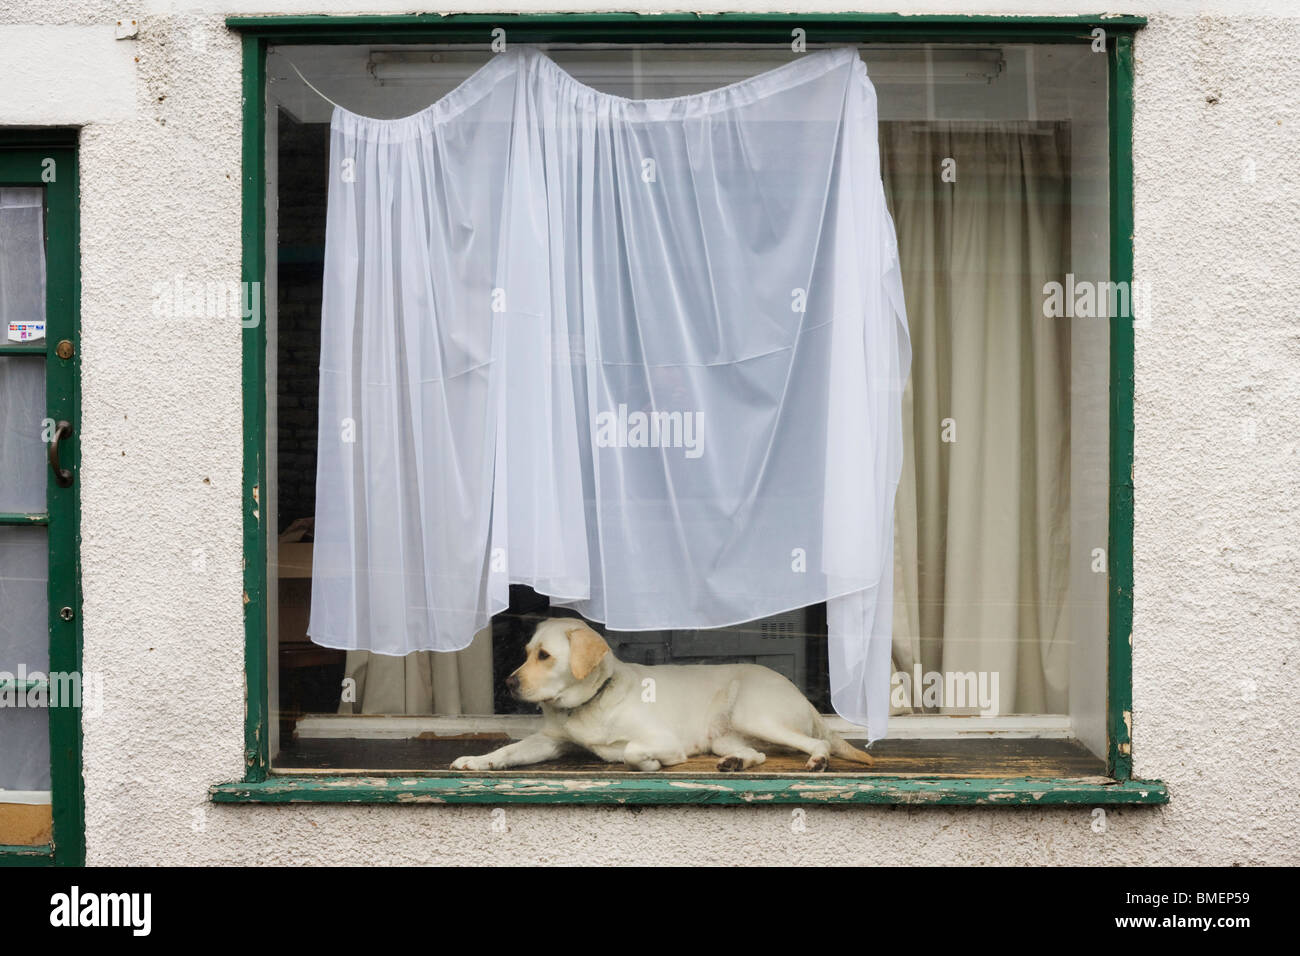 Pet dog in house window. - Stock Image